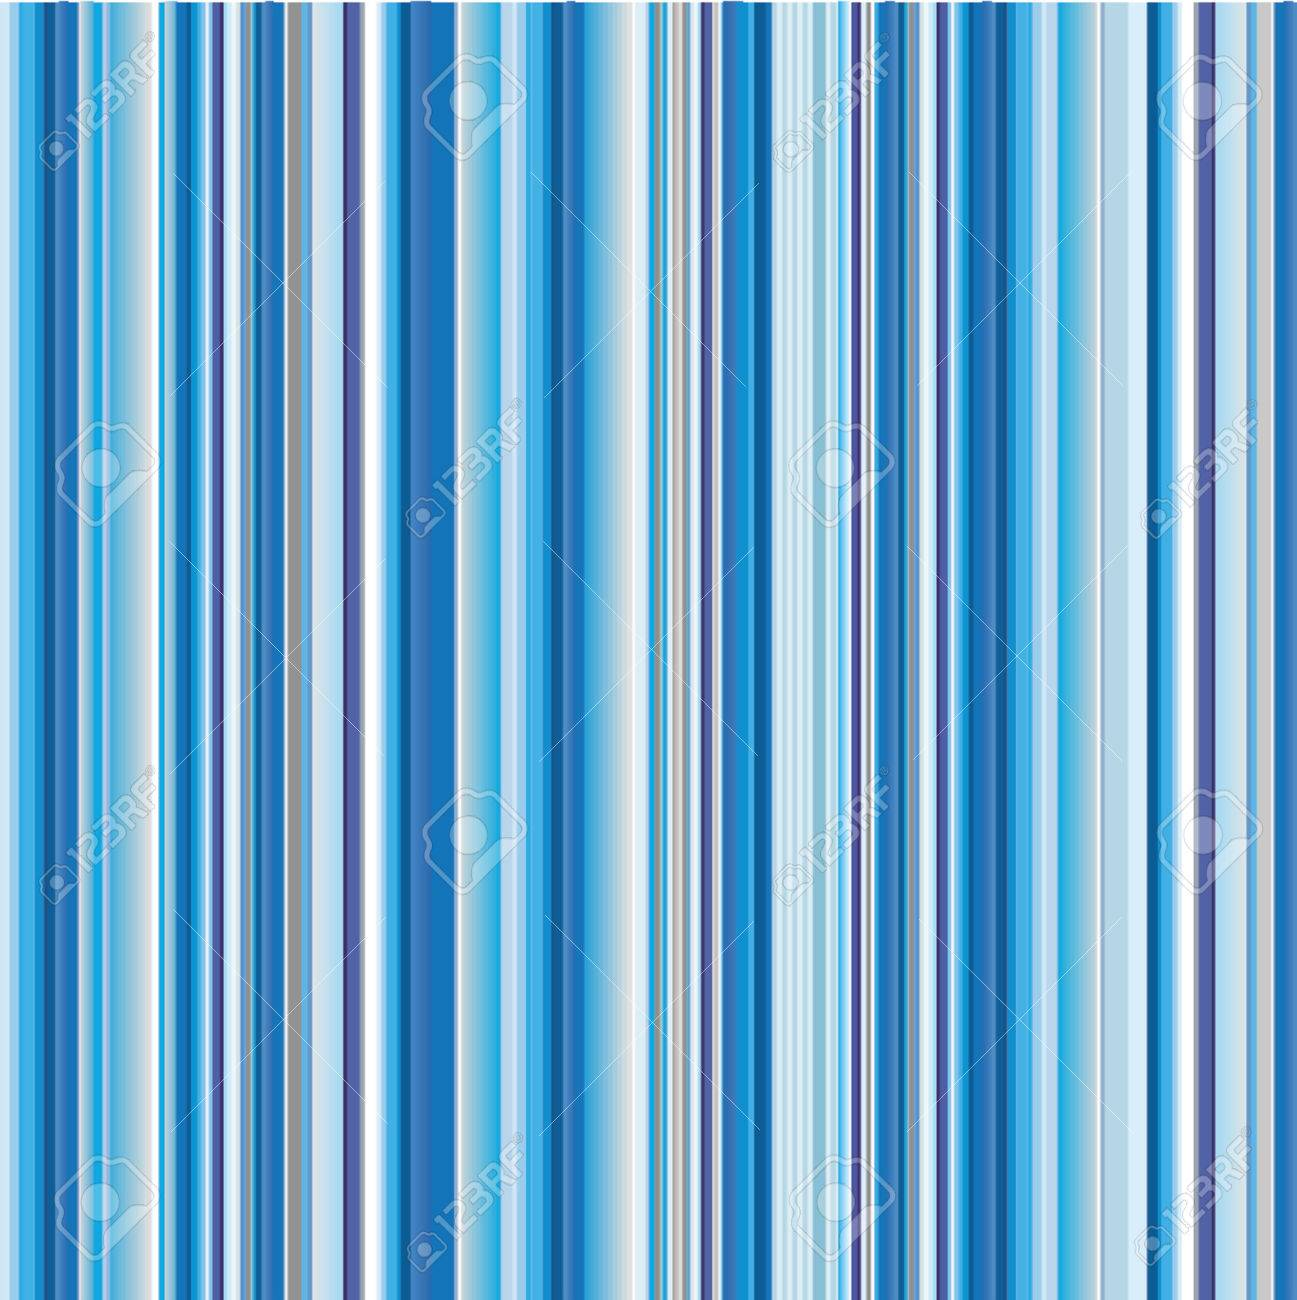 Background image width - Blue Striped Abstract Background Variable Width Stripes Stock Vector 1279979